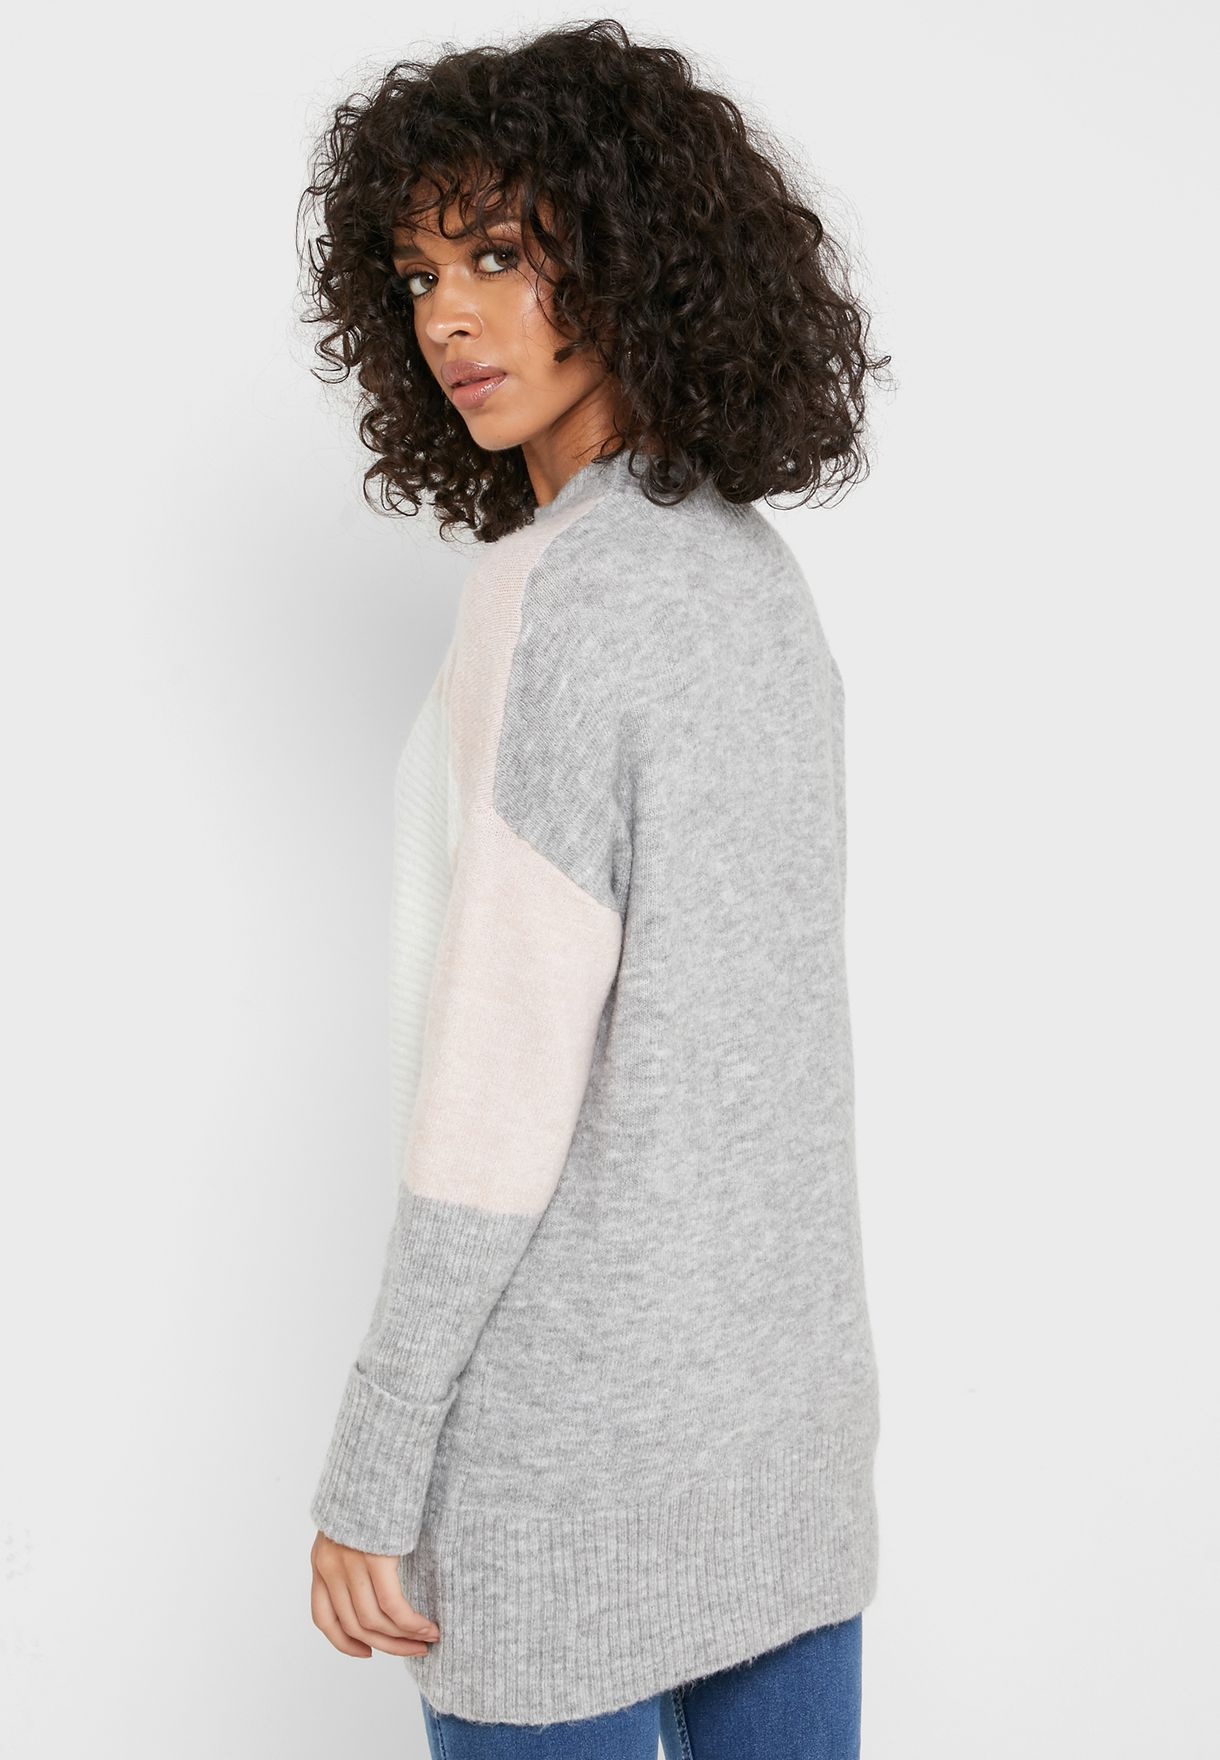 Buy New Look Multicolor Colorblock High Neck Sweater For Women, Uae 17736at63egp